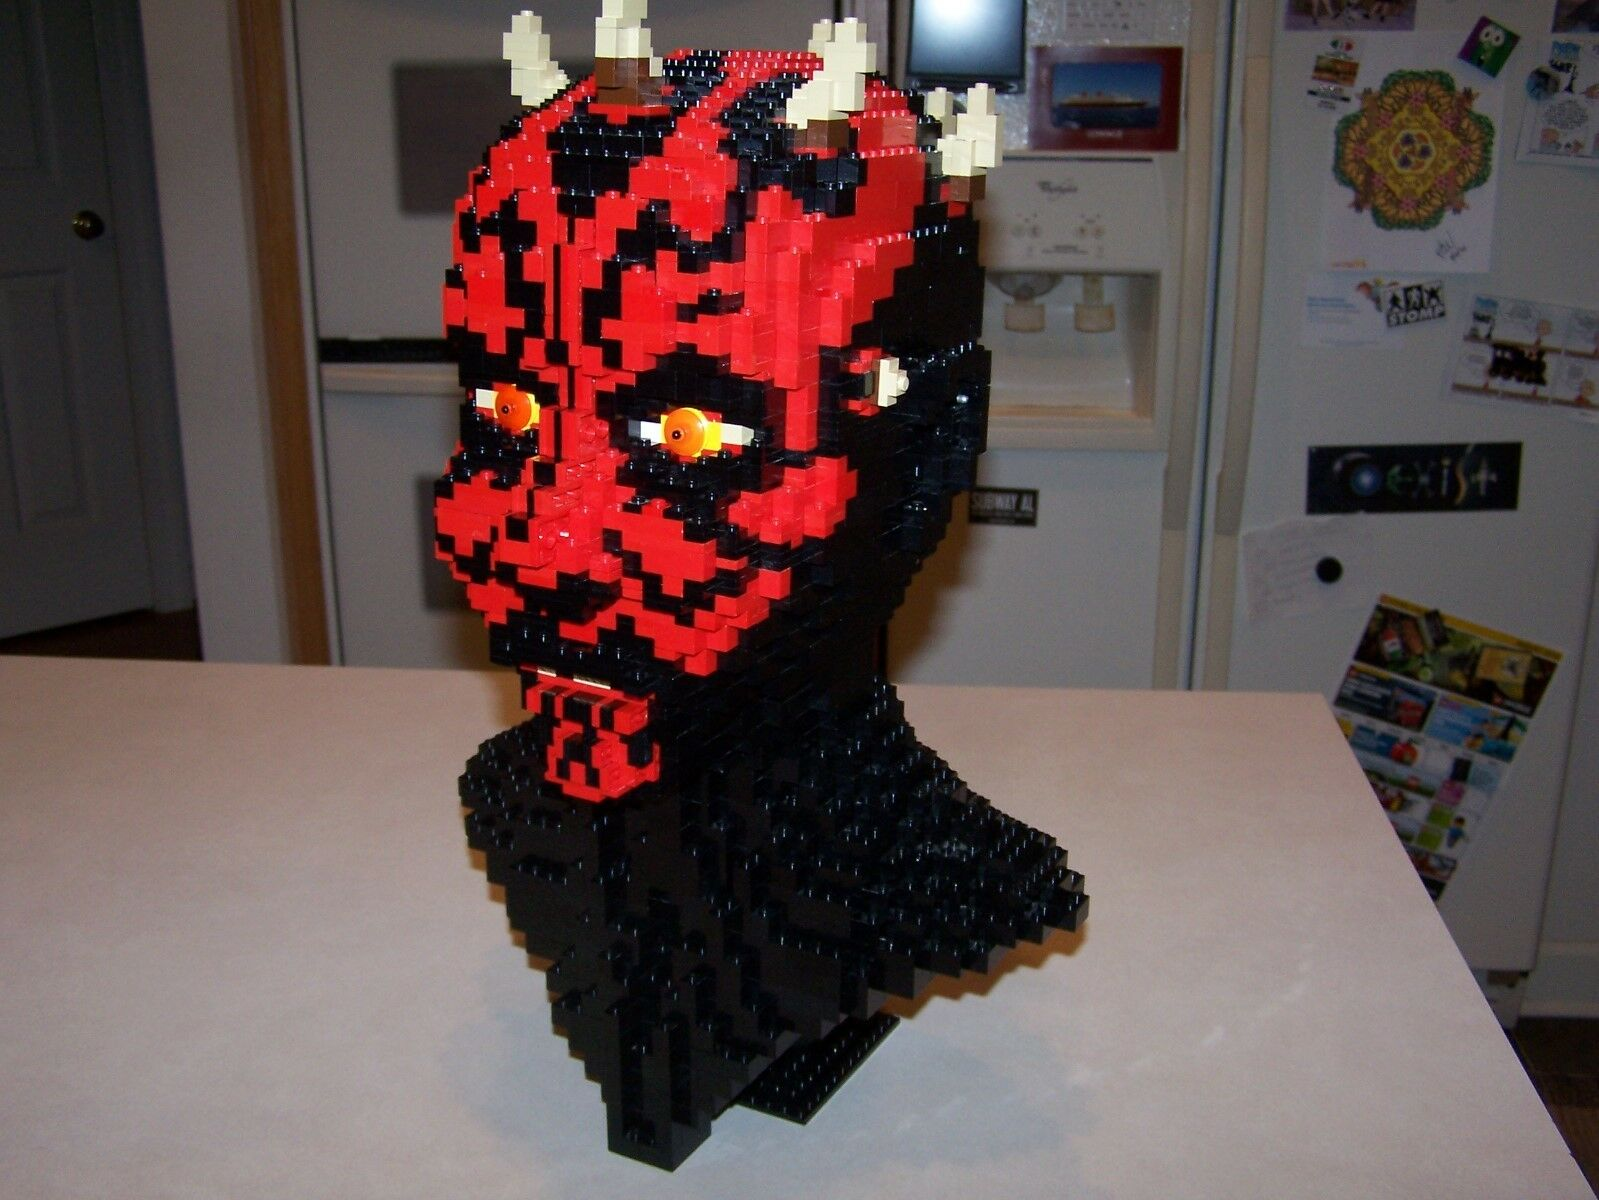 Lego 10018 Darth Maul - UCS Sculpture Star Wars 100% Complete